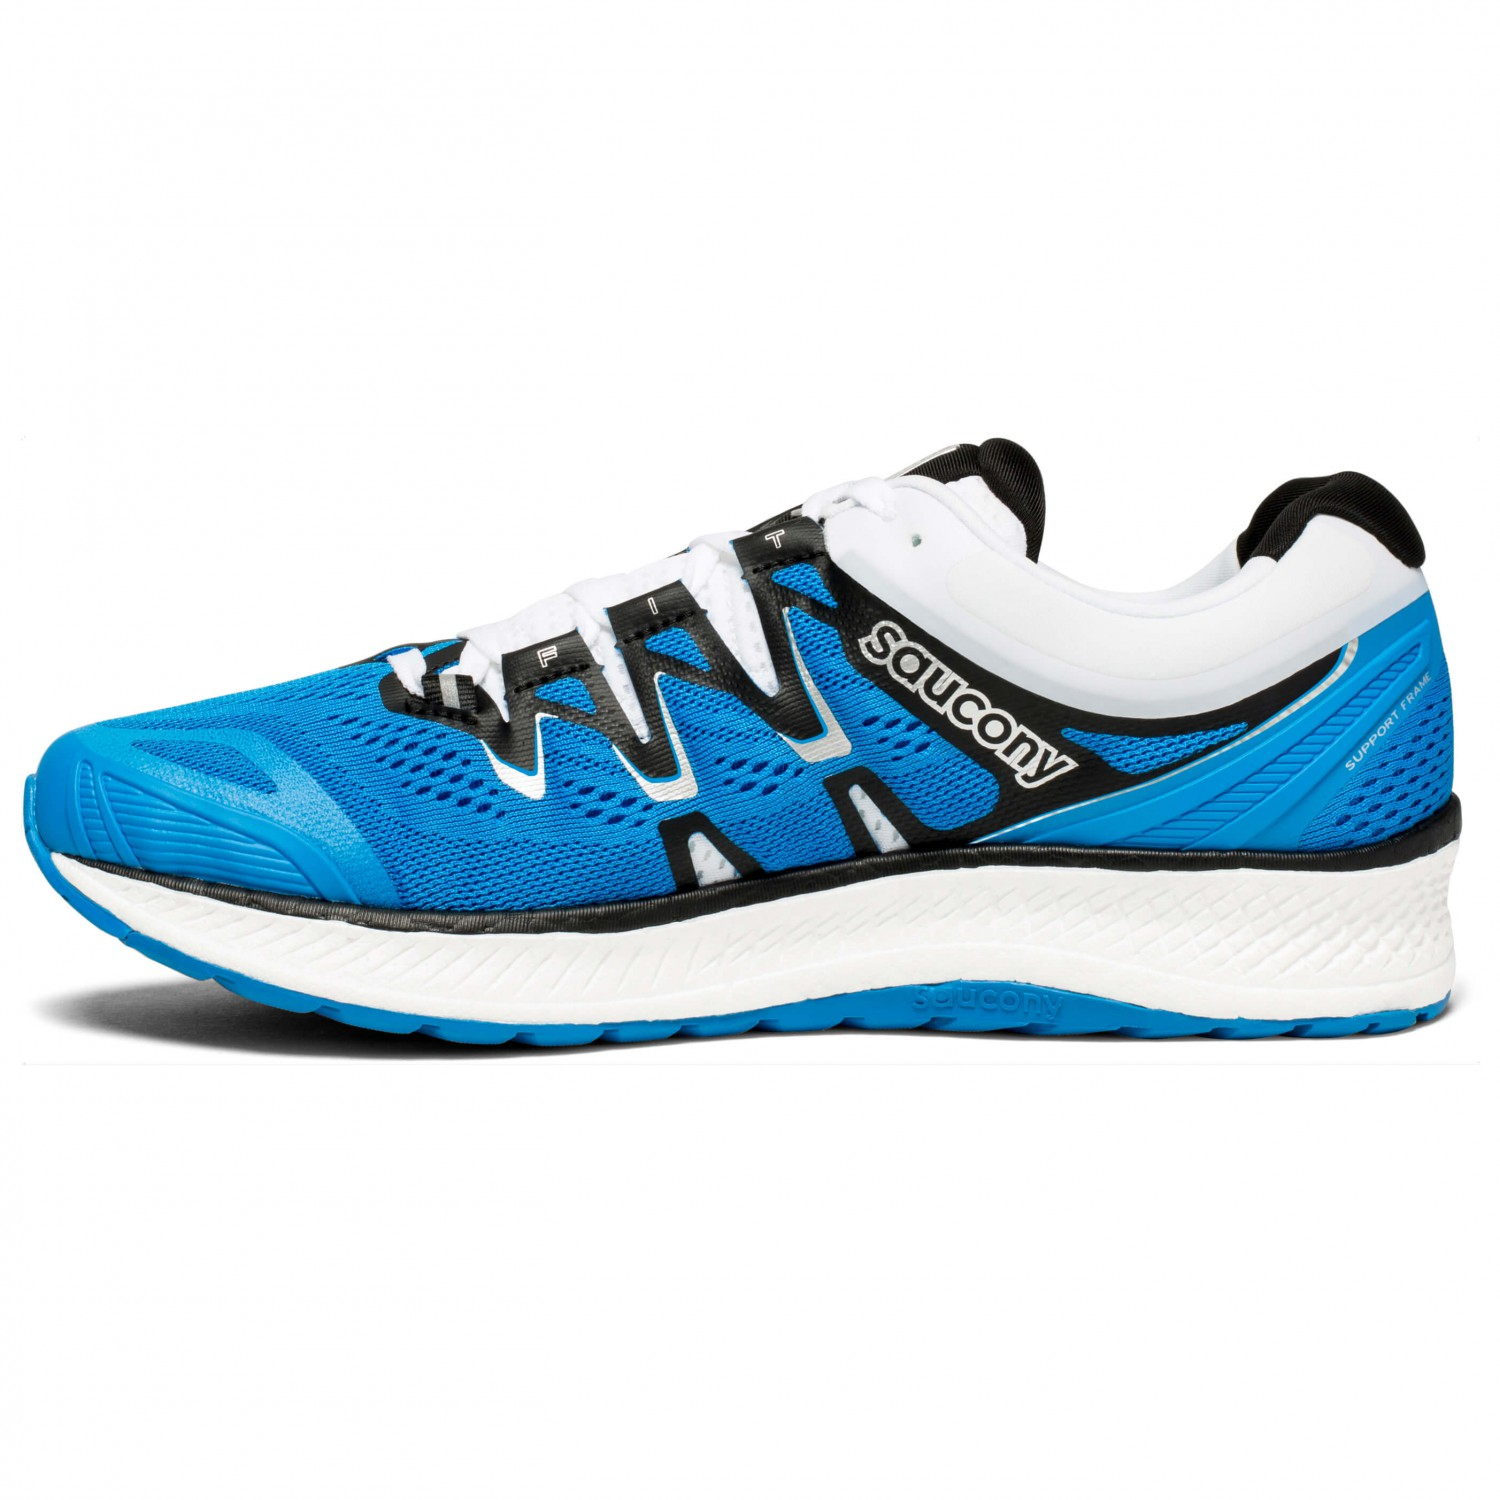 Saucony Triumph Iso Women S Running Shoes Uk